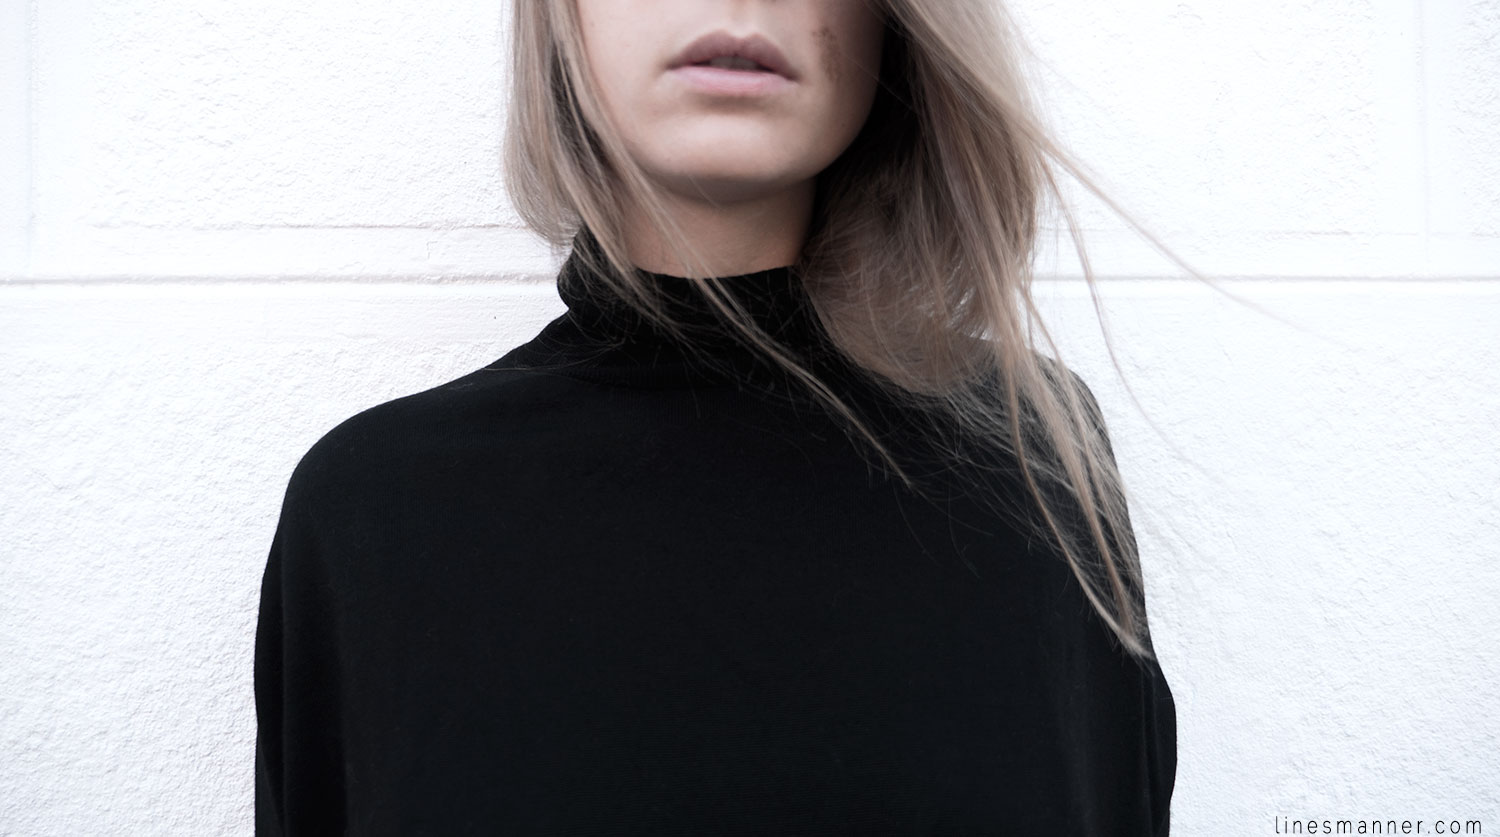 Lines-Manner-Remind-2015-Minimal-Essential-Outfit-Inspiration-Blog-Timeless-Year-Seasons-Details-Travel-Fashion-Versatile-Clean-Sleek-Quality-13